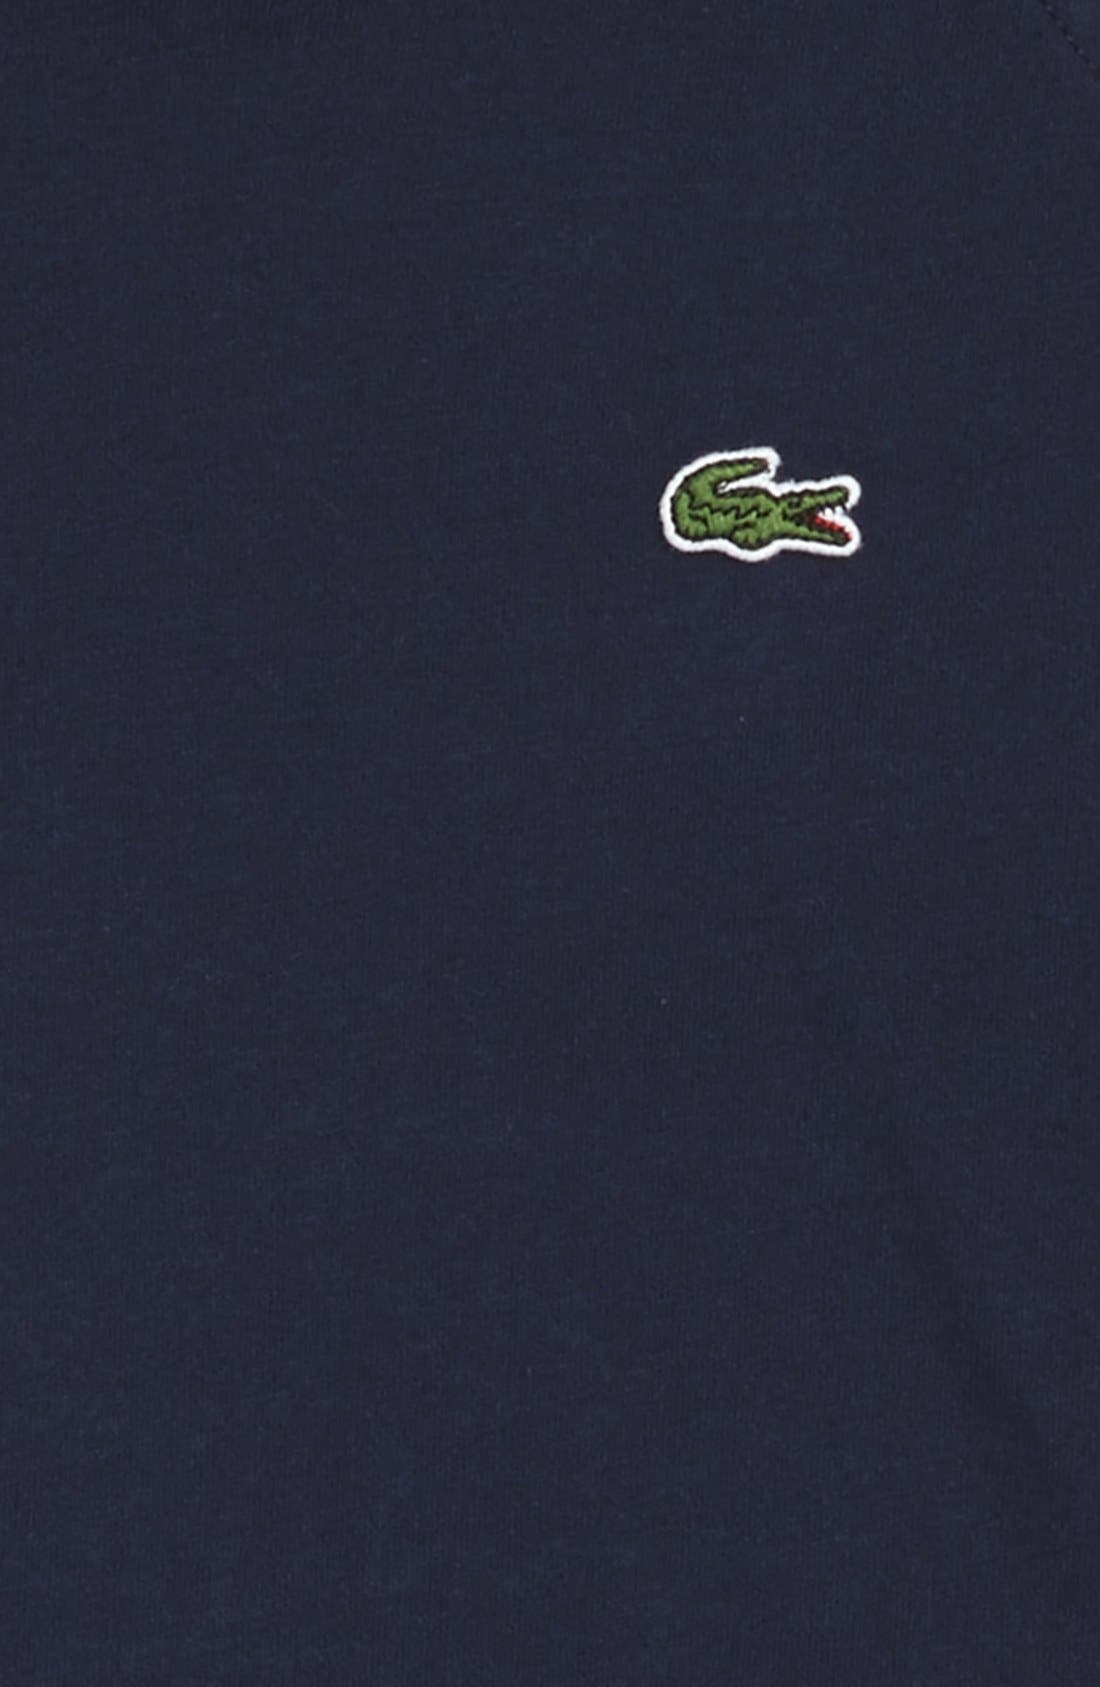 Alternate Image 2  - Lacoste Hooded Jersey T-Shirt (Big Boys)